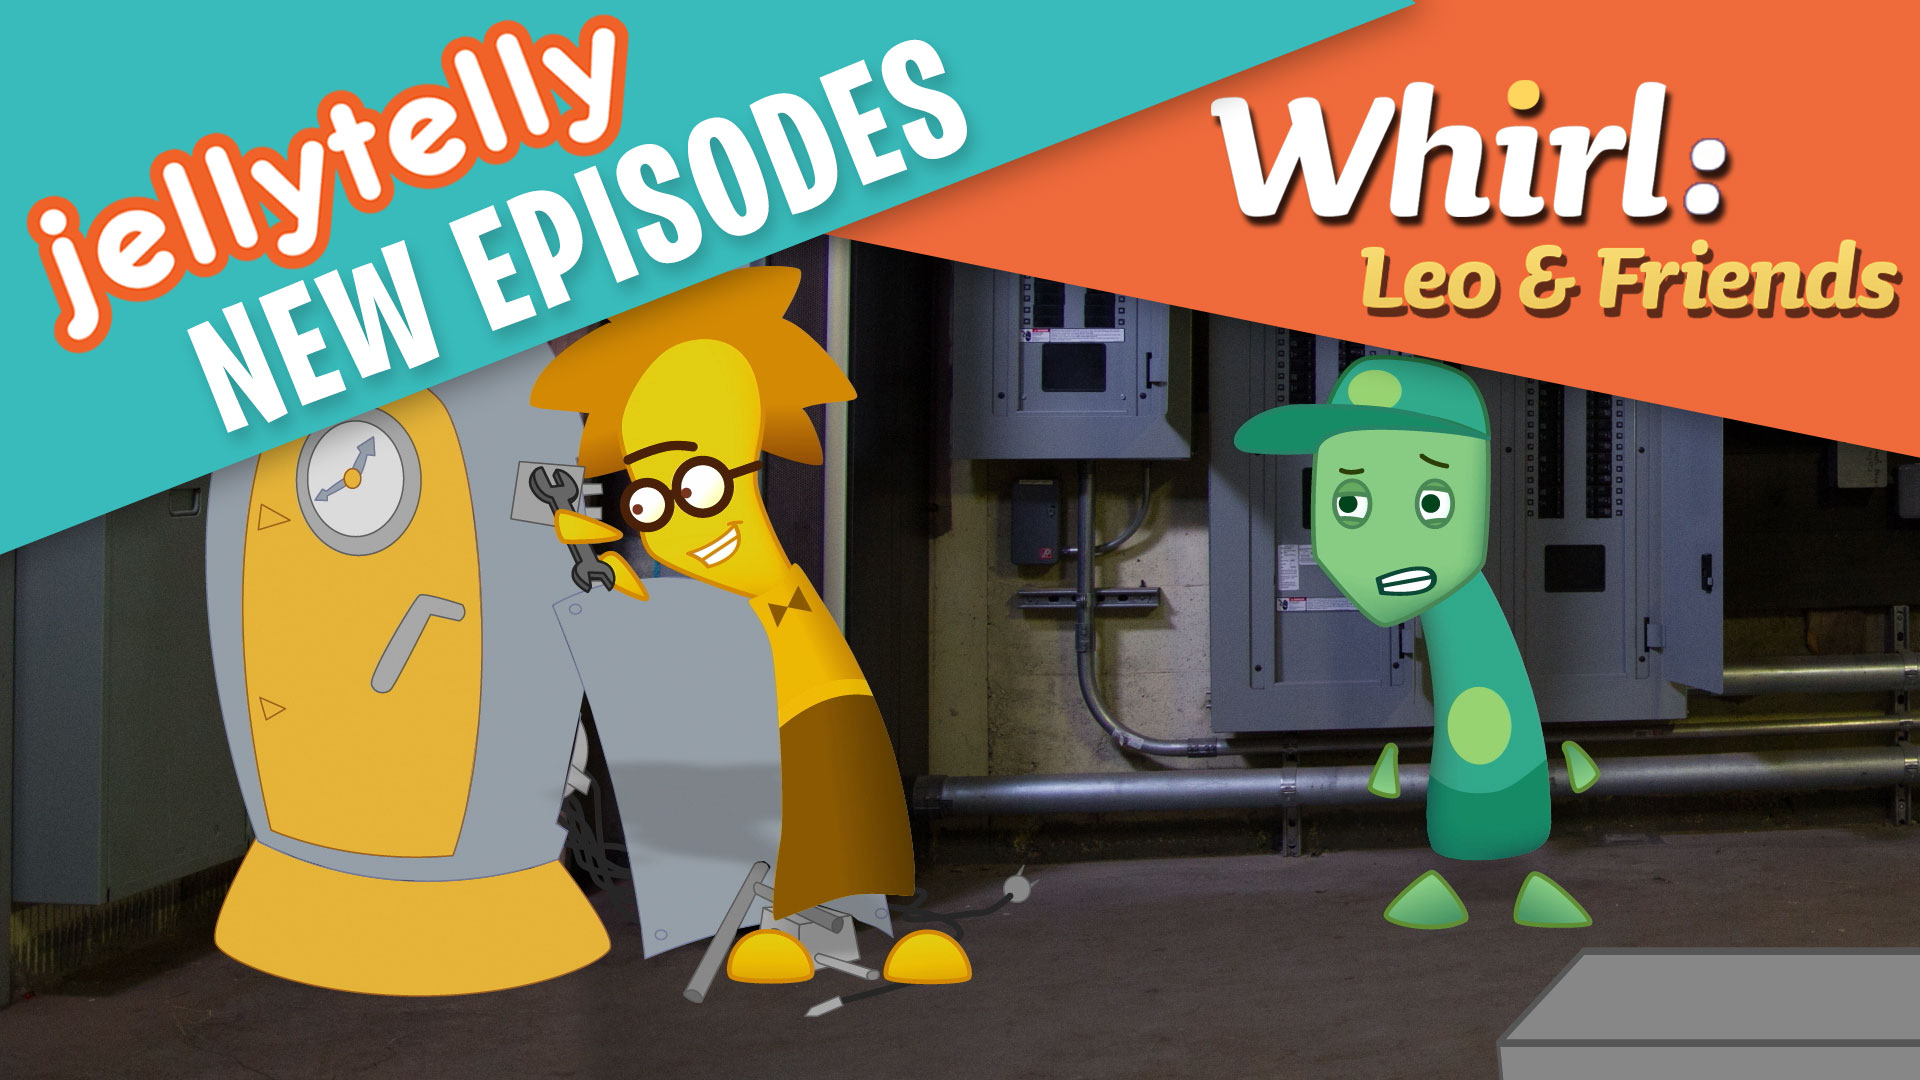 Whirl leo v3 ep16 featured preview image